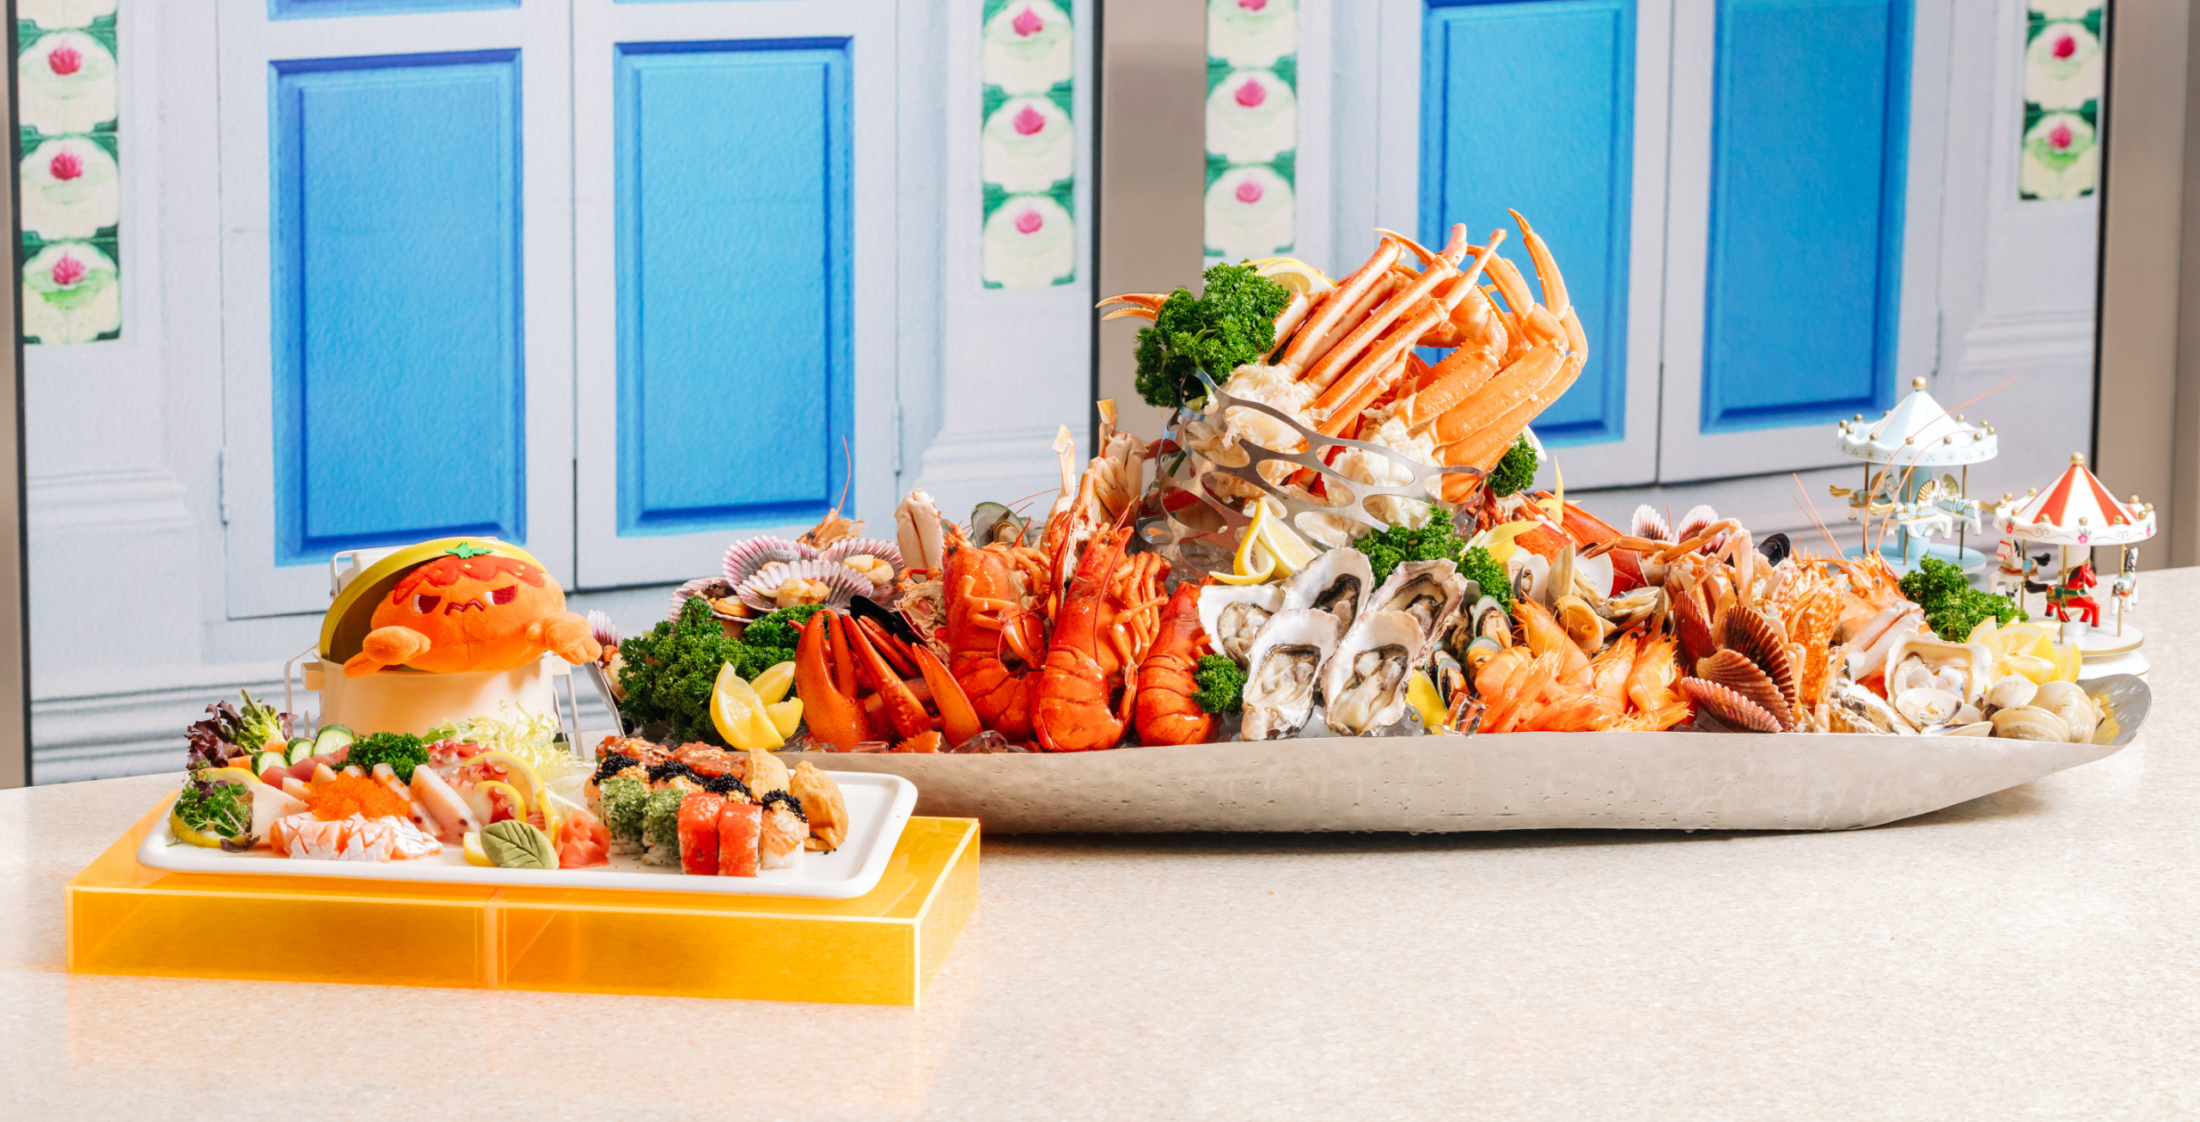 Platter of seafood - lobsters, prawns, oysters, crab, scallop, crayfish - and platter of sushi from Carousel Buffet Restaurant Singapore